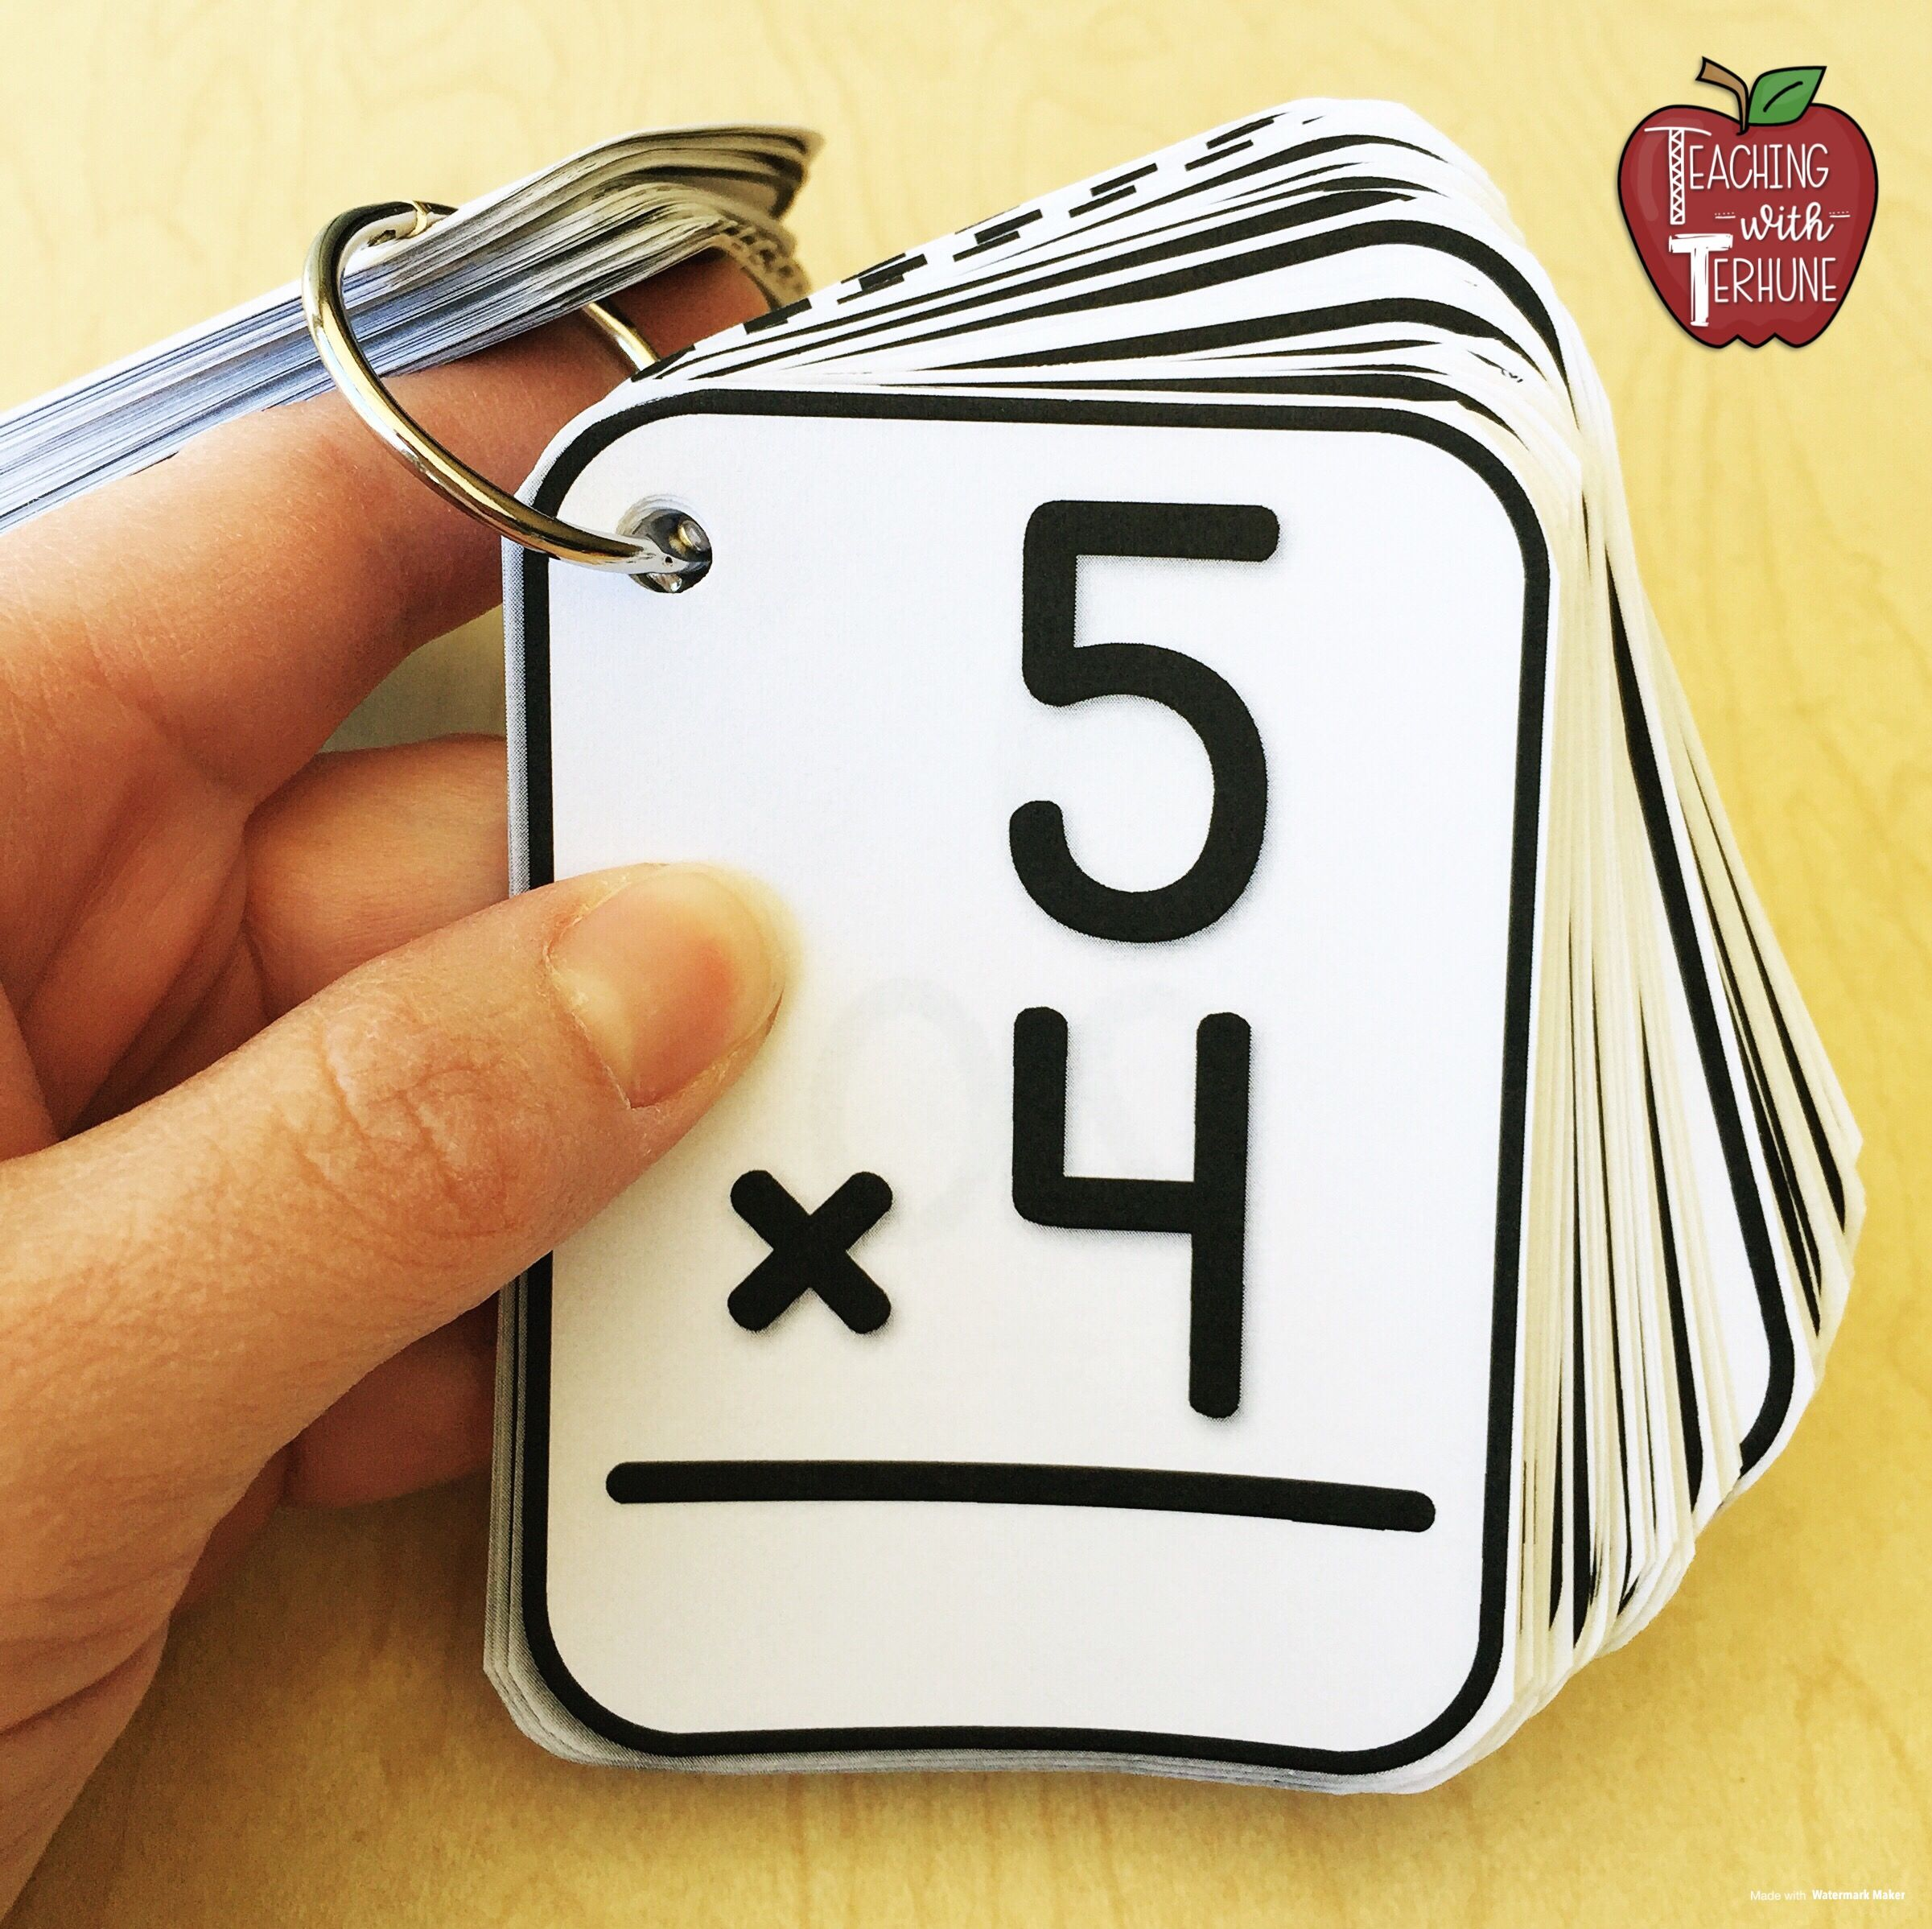 photo regarding Printable Multiplication Flashcards With Answers on Back called Pin upon Training With Terhune